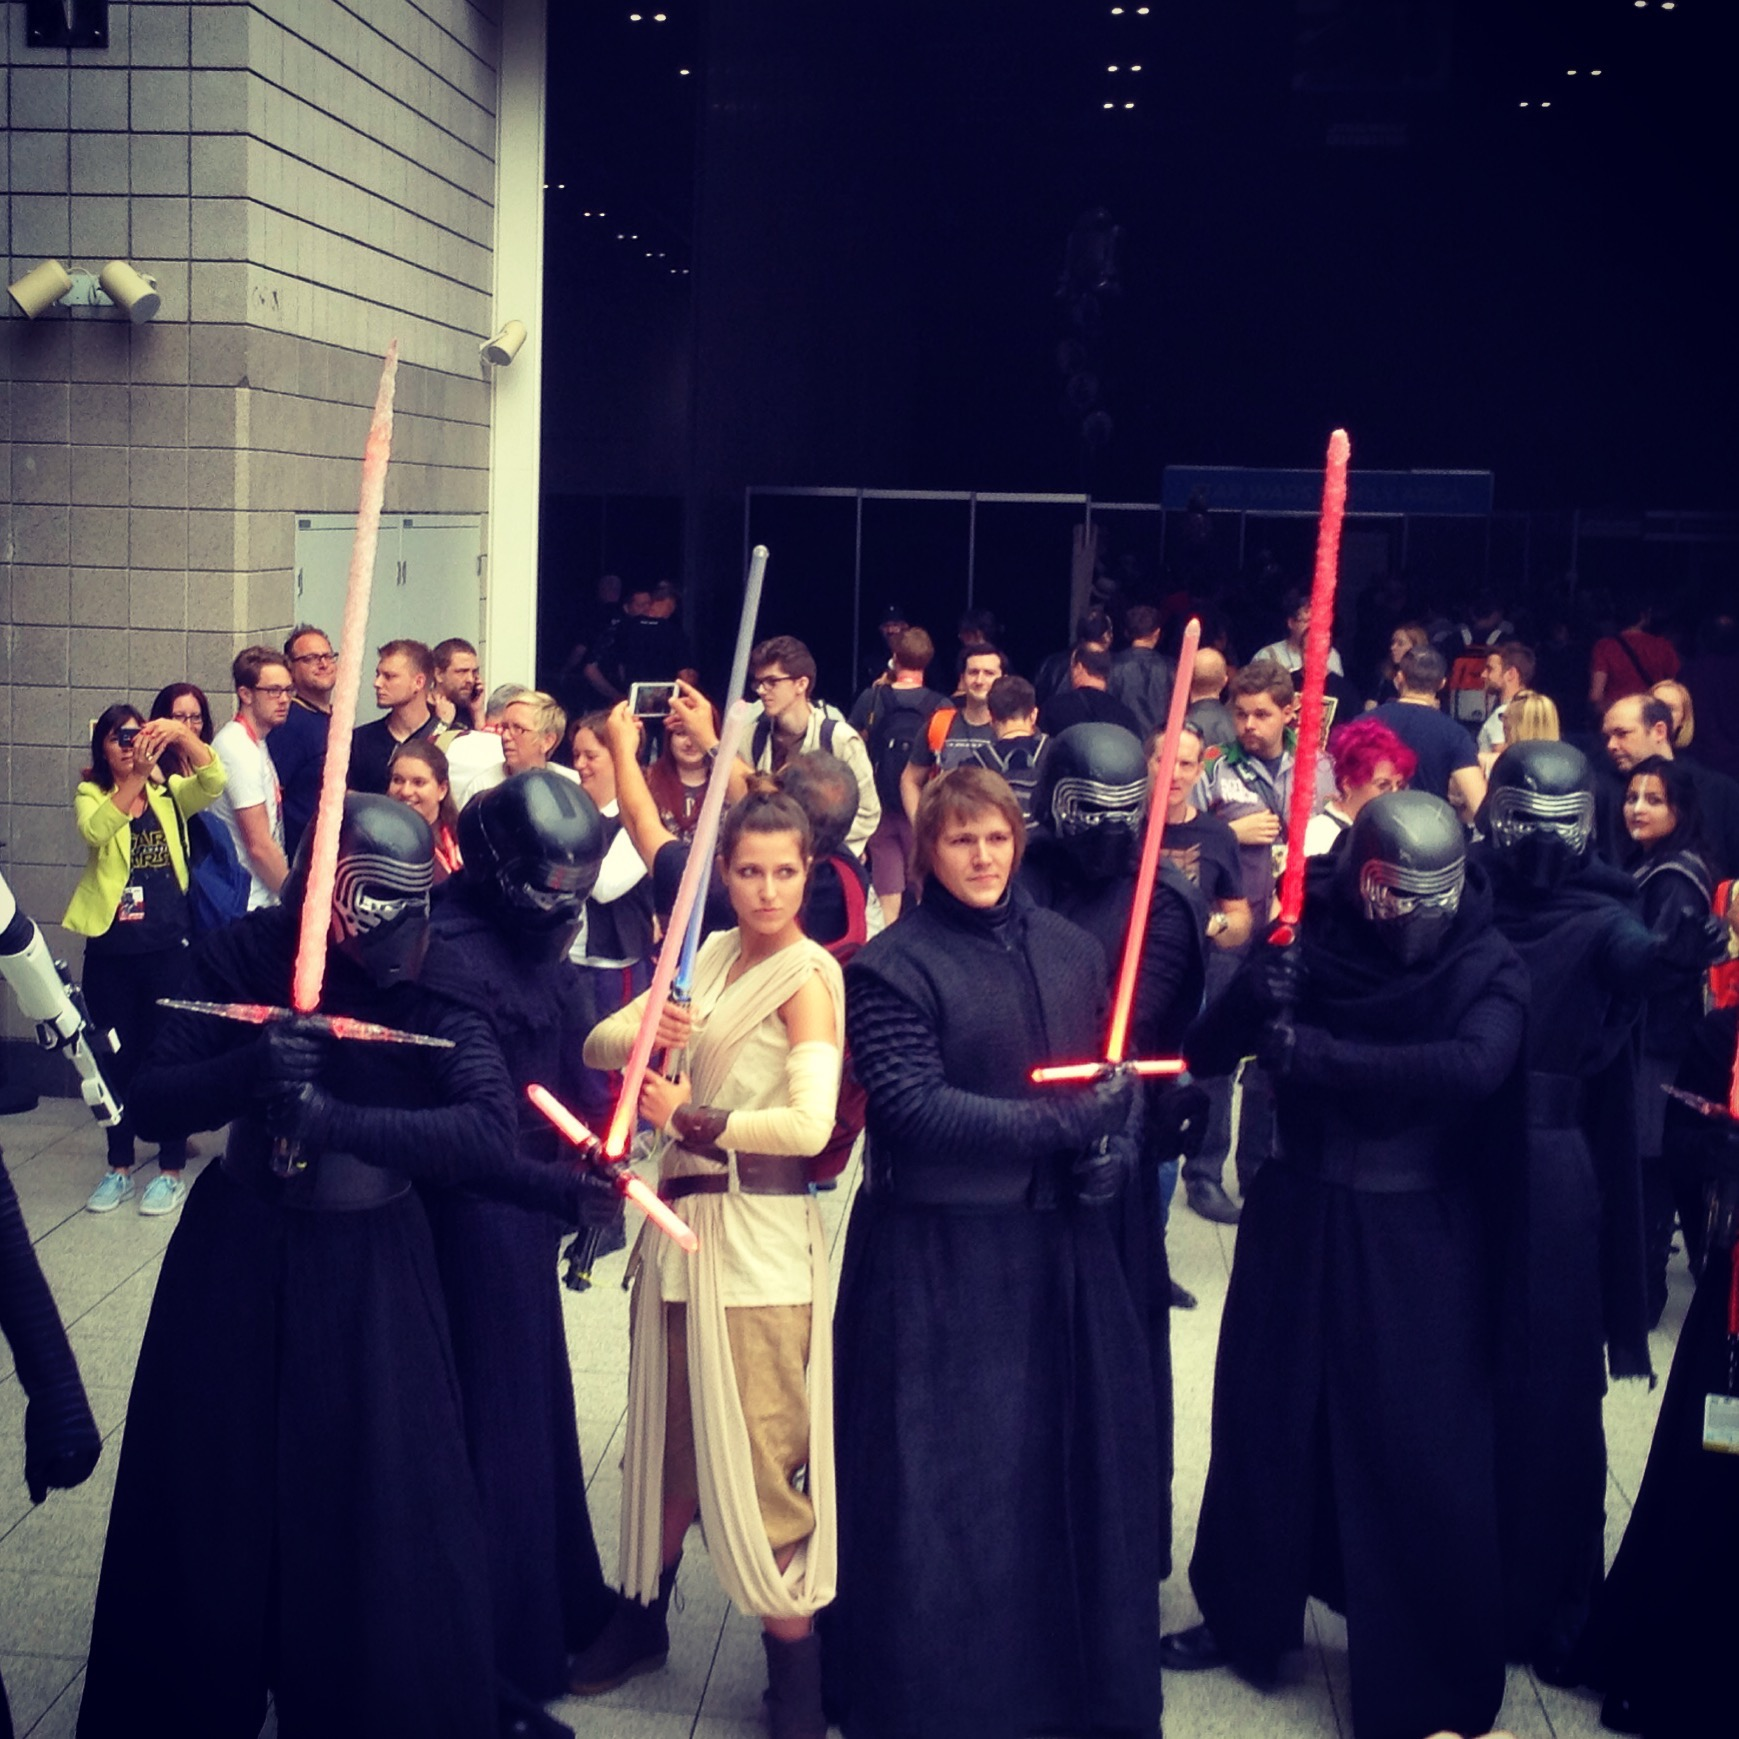 Star Wars Celebration Cosplay and Exposition 42